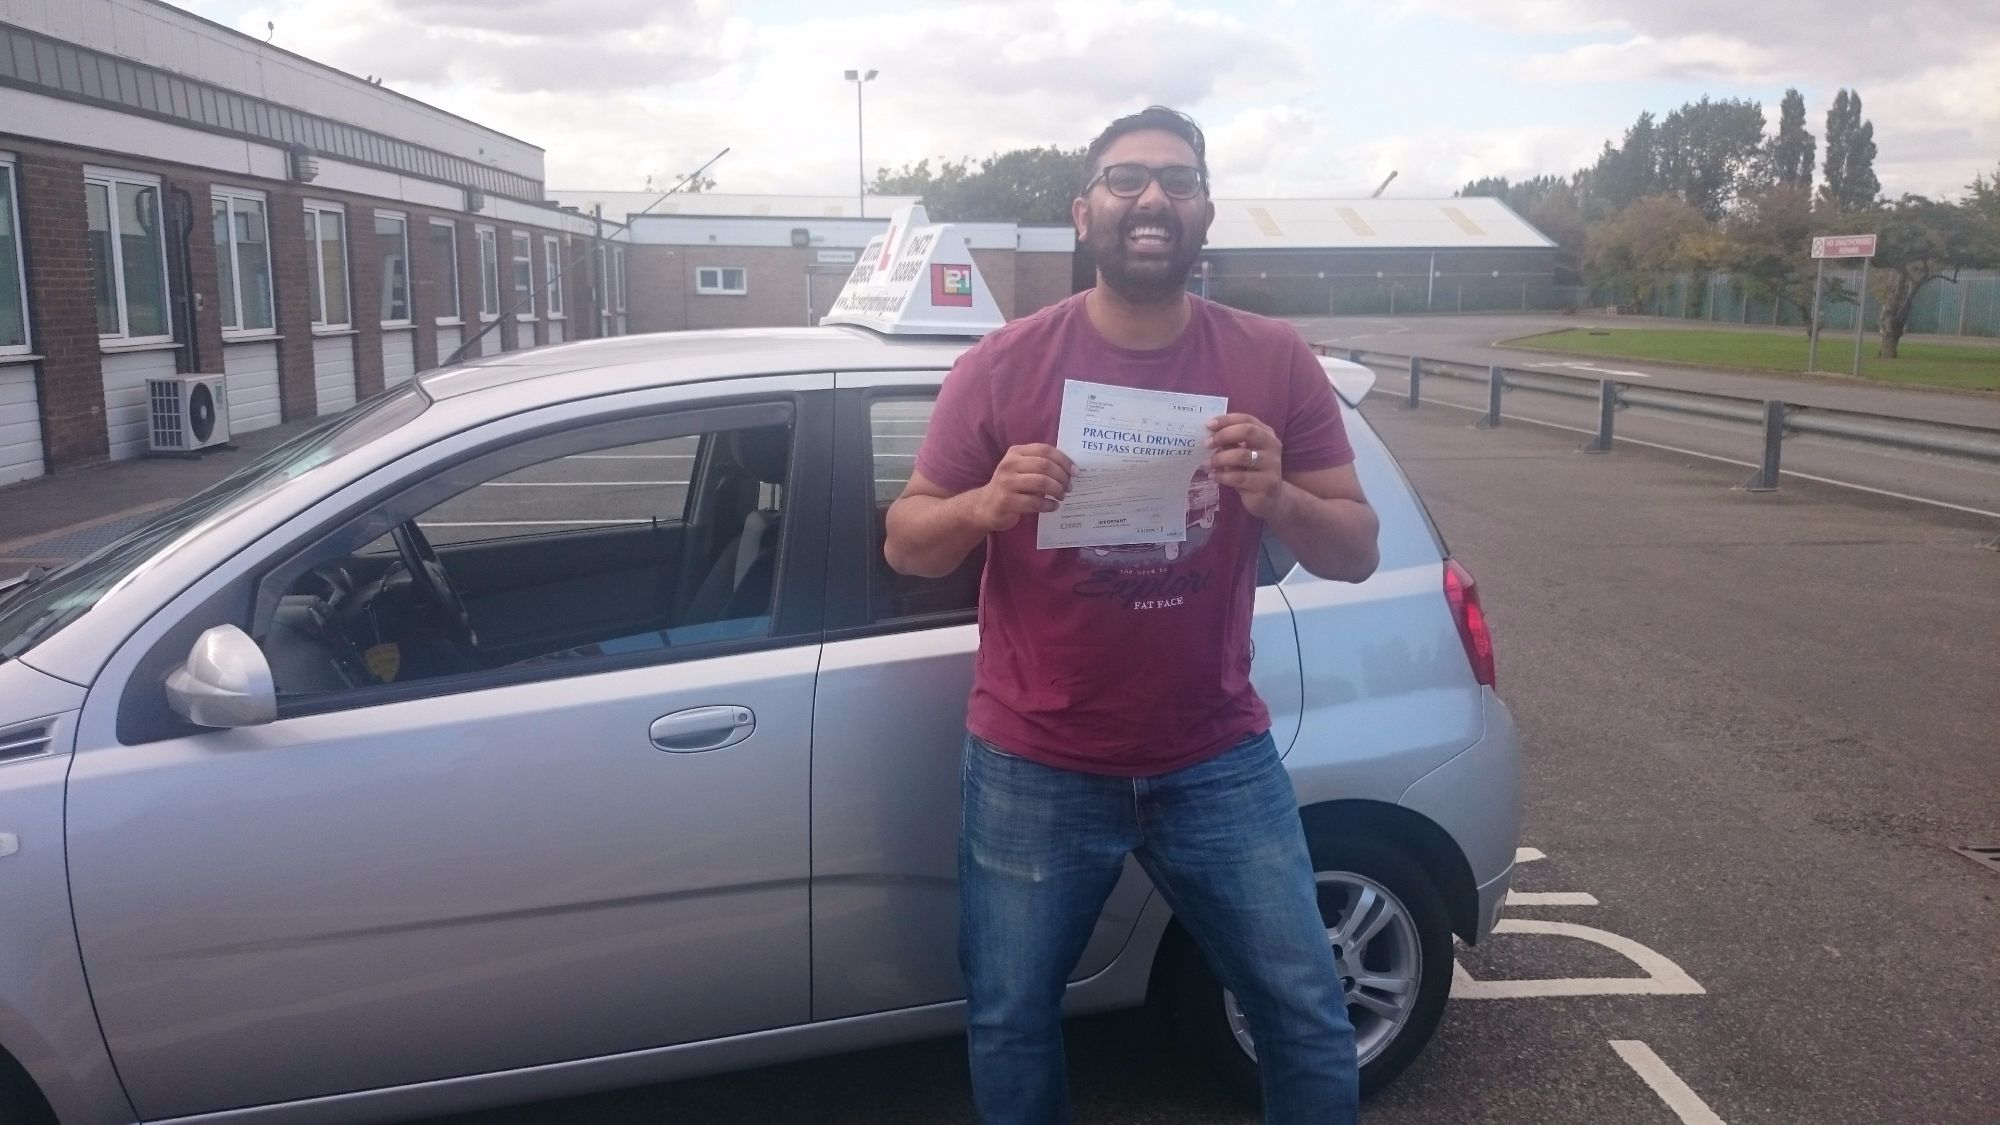 Dr Tajinder Khera took his driving lessons and passes his test in Grimsby with 21st Century Driving